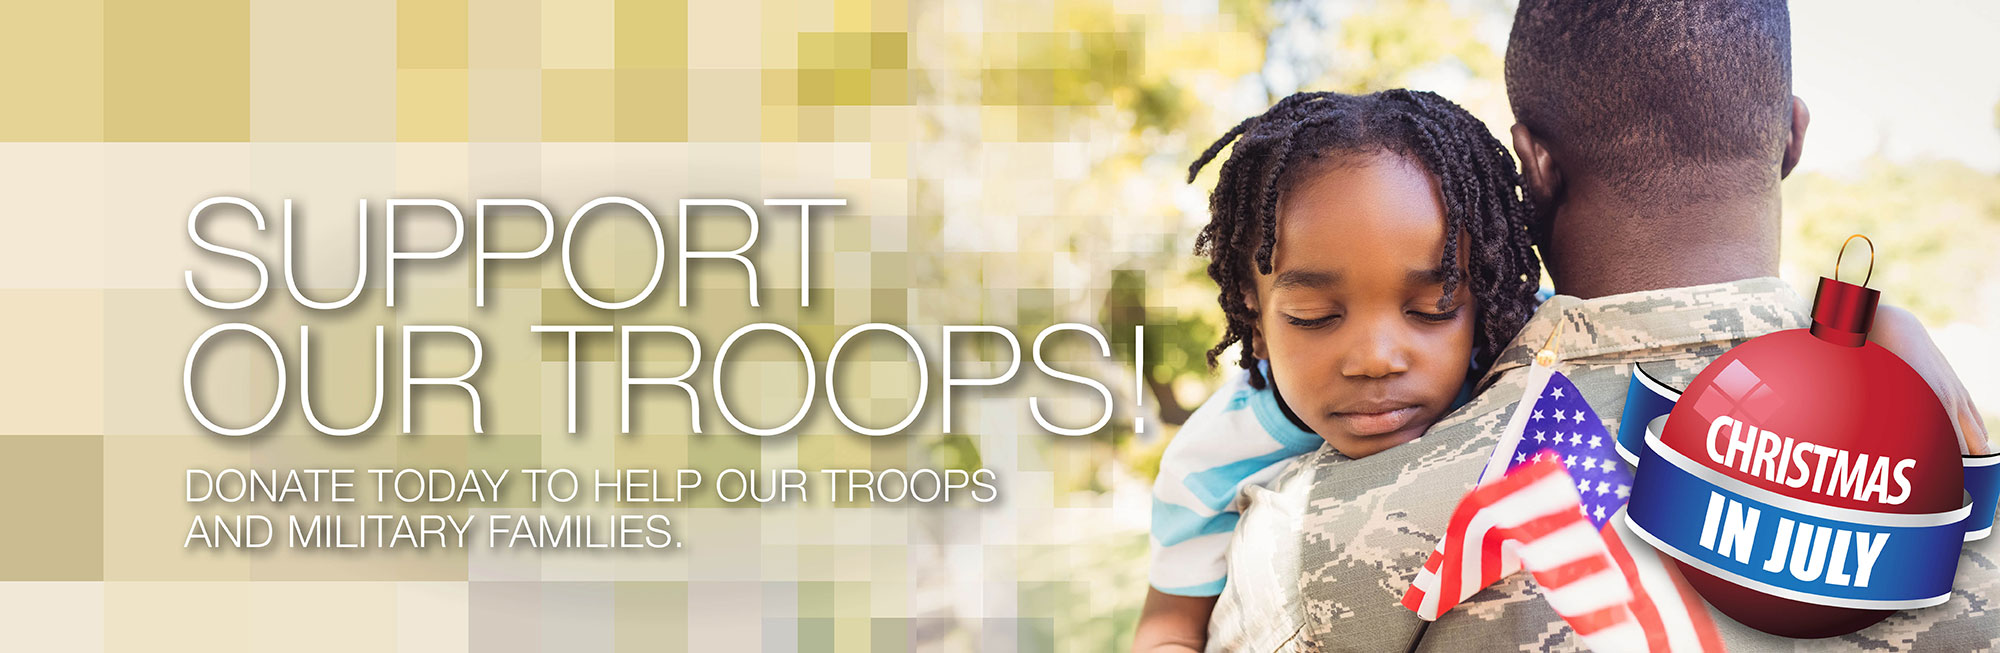 Support out troops! Please donate today to help our troops and military families.